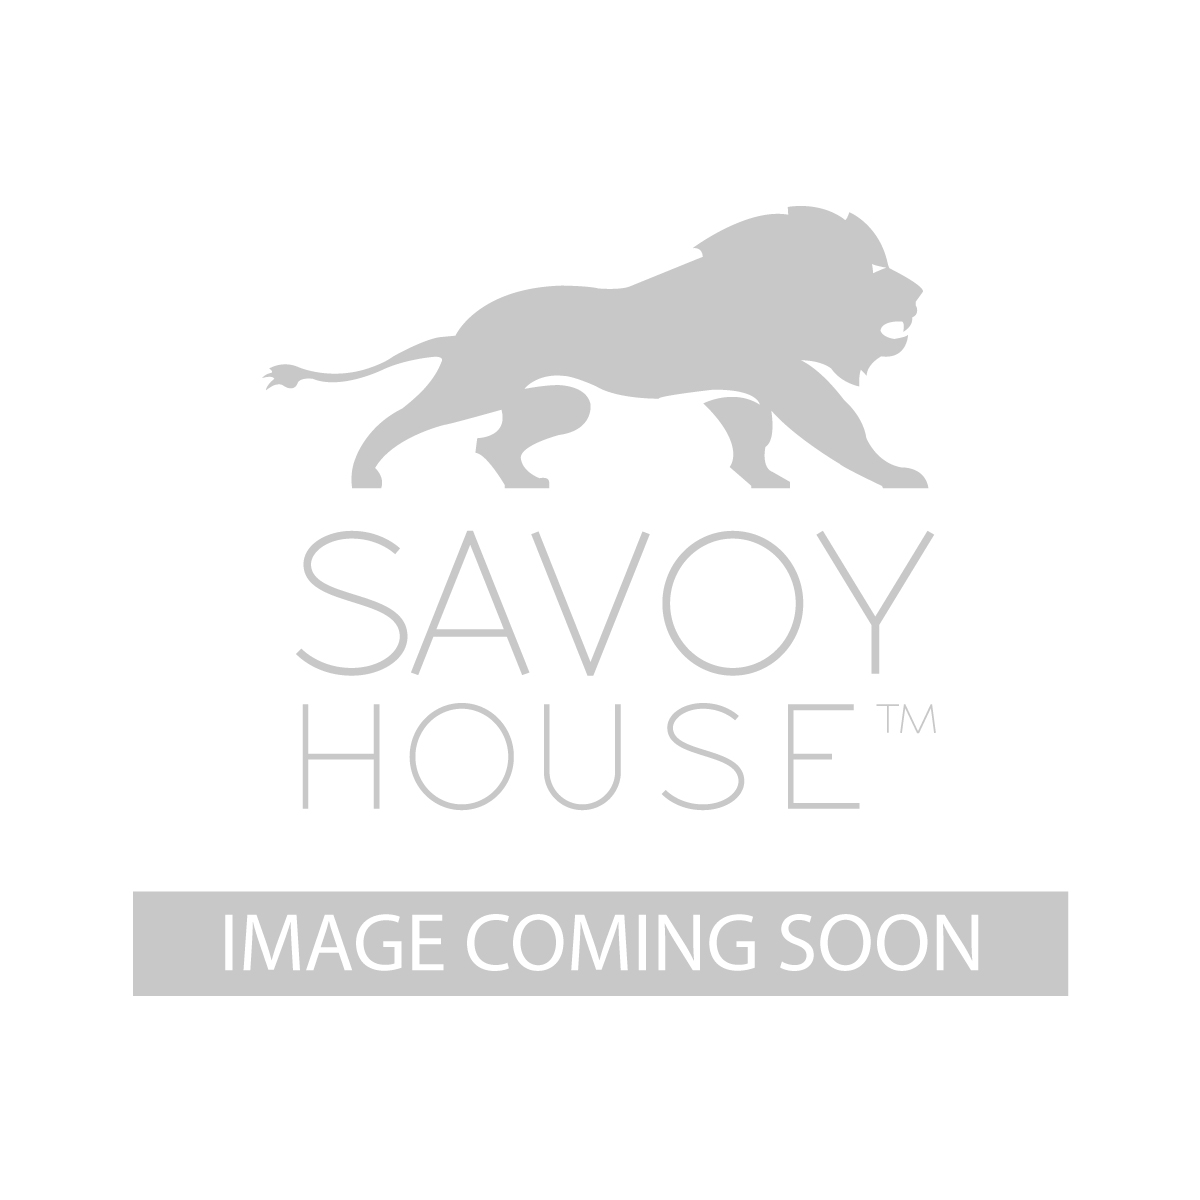 1 4101 4 133 Santiago 4 Light Oval Chandelier by Savoy House